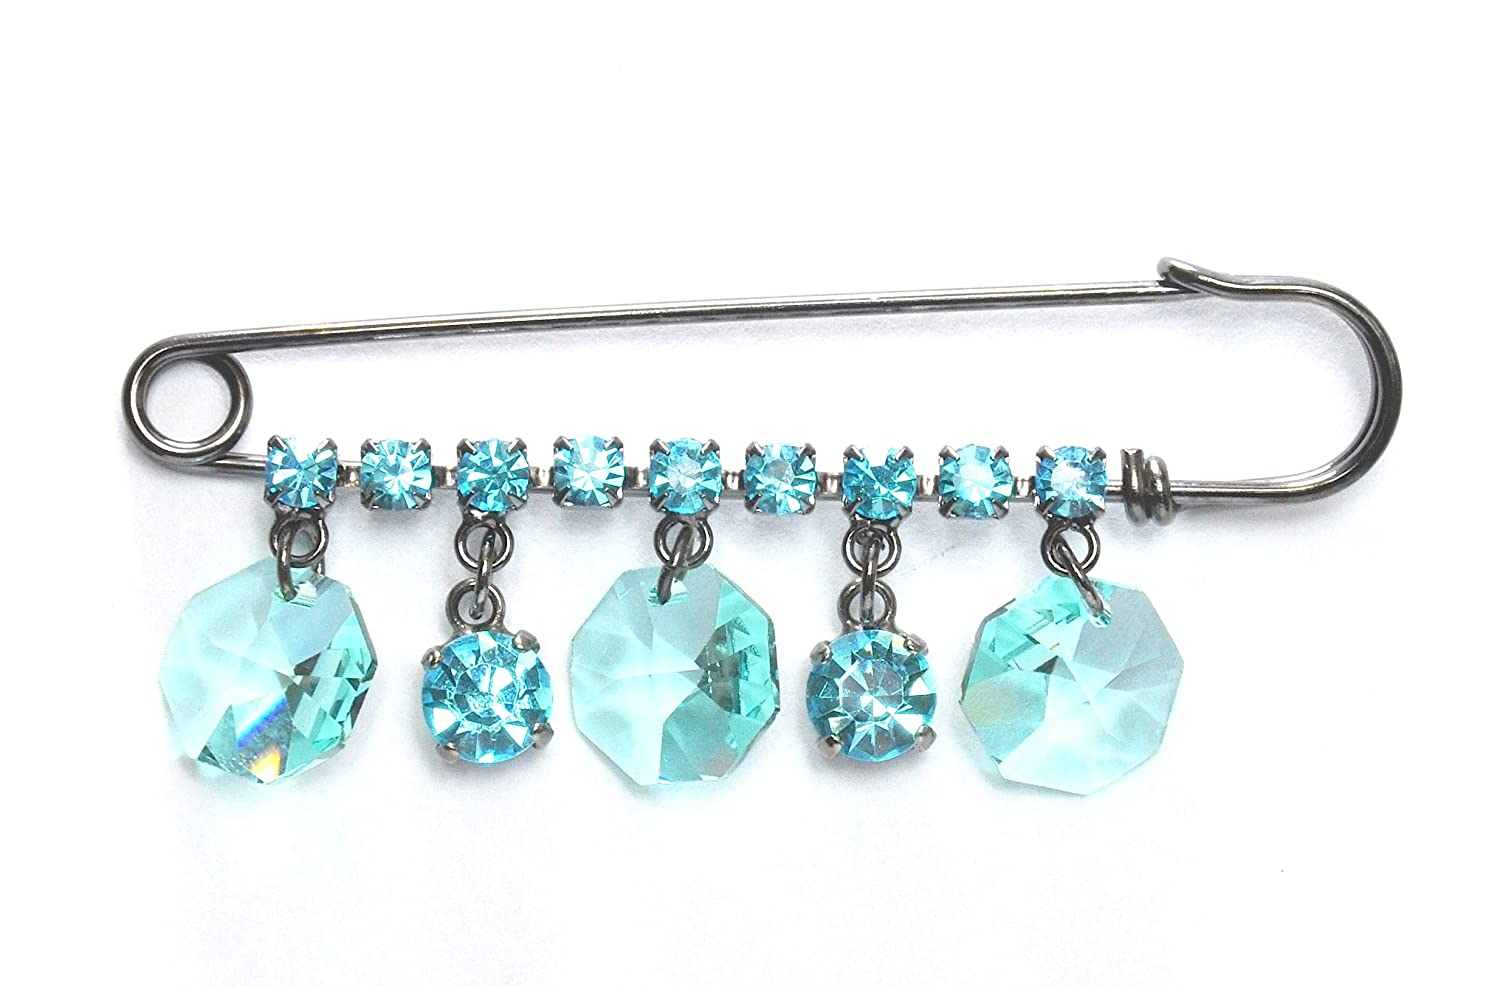 Amazon.com: Swarovski Crystal Kilt Pin Brooch with Aqua Drops in Gun ...